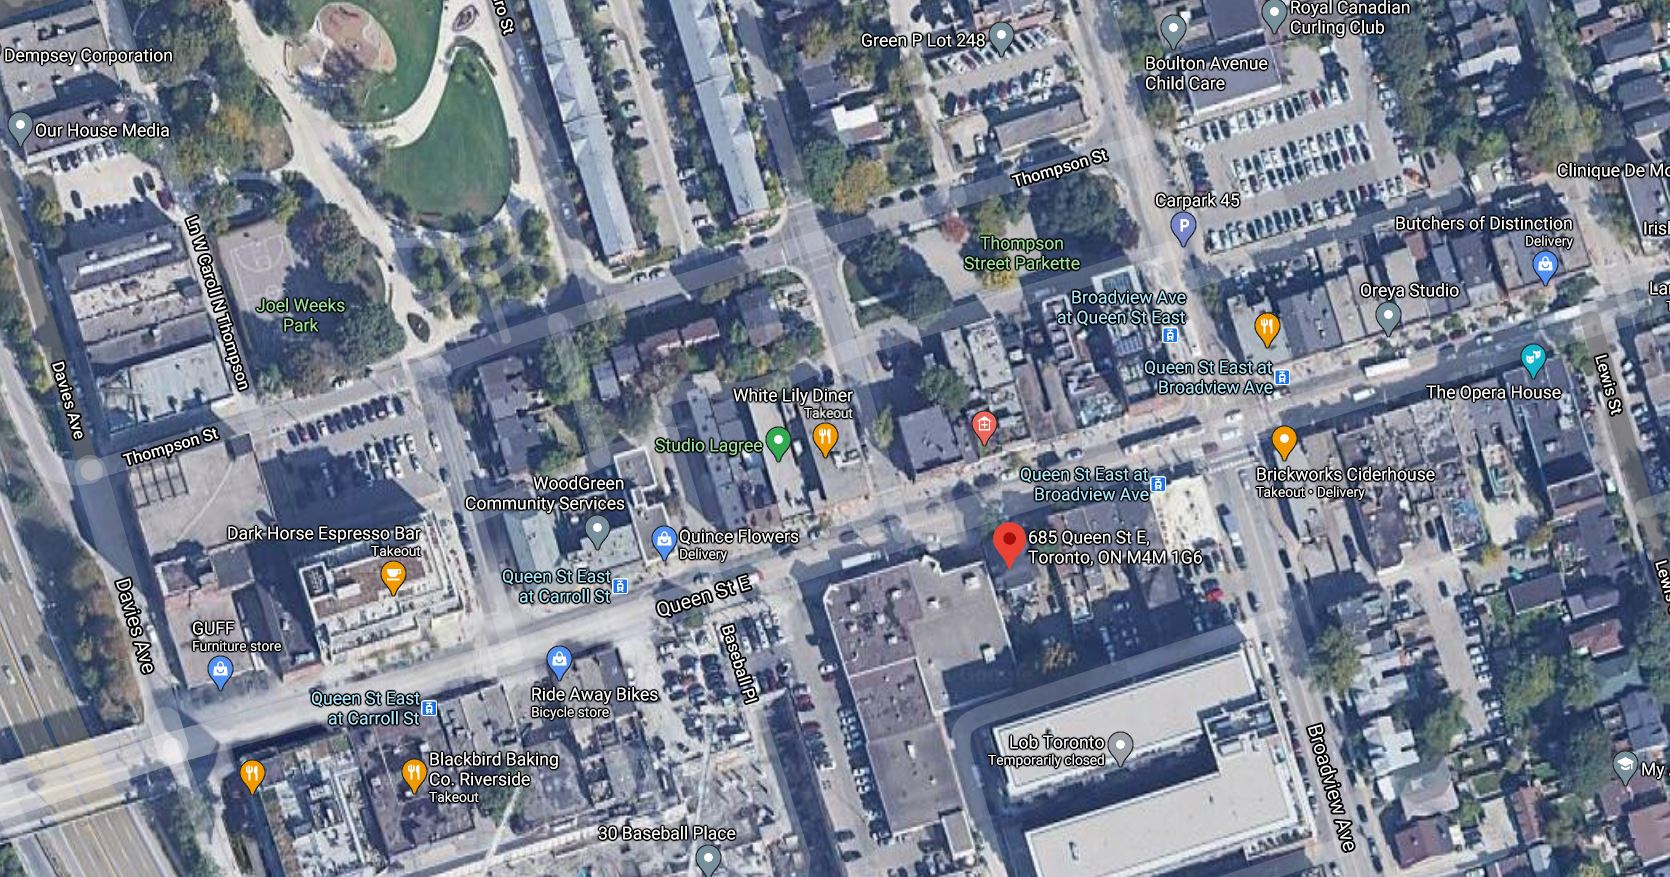 Satelite View of Site, 685 Queen St E, City of Toronto